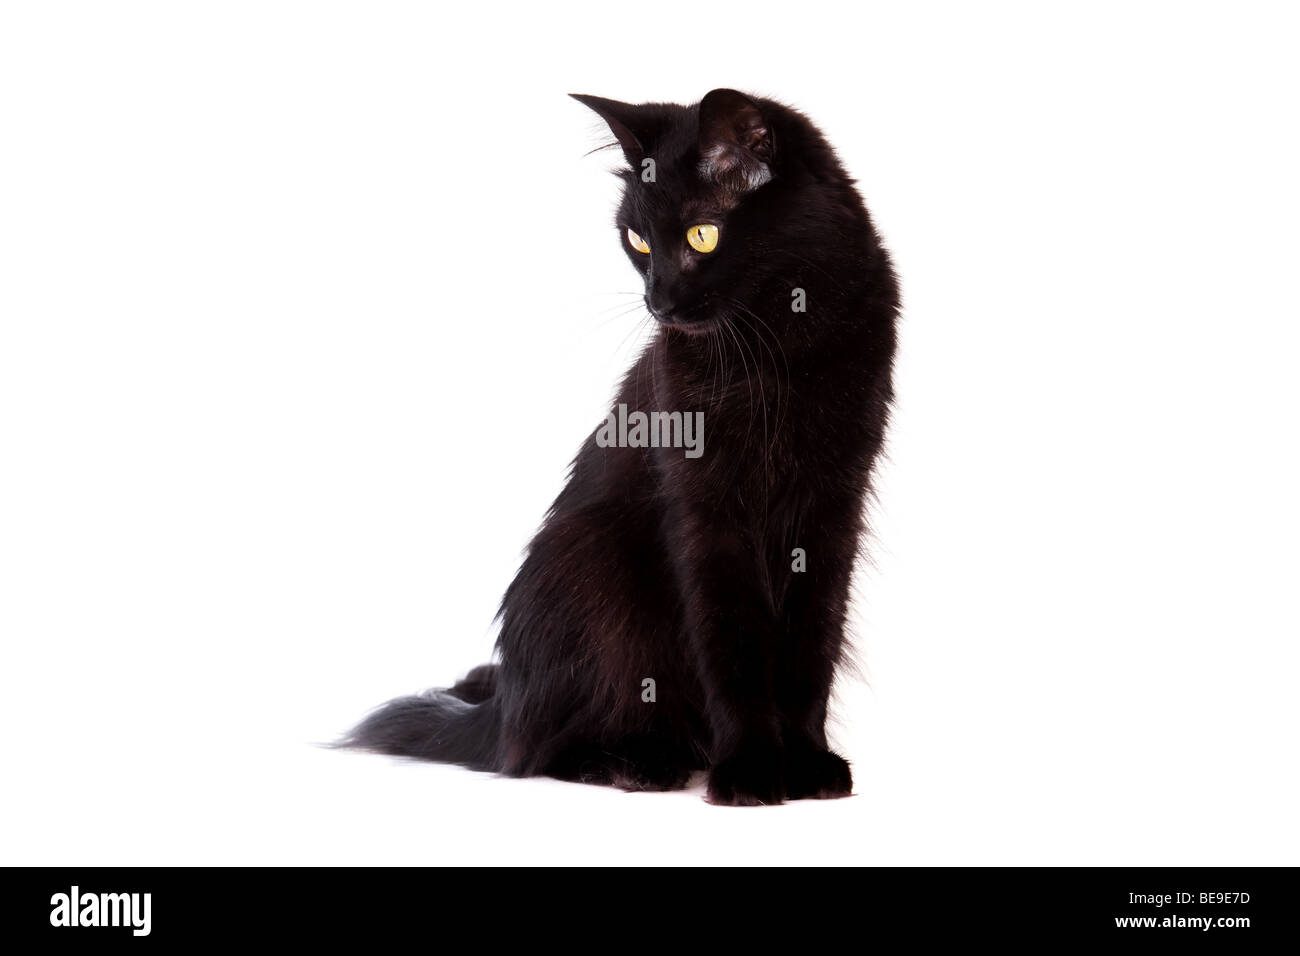 black cat with long hair looking down isolated on white background - Stock Image